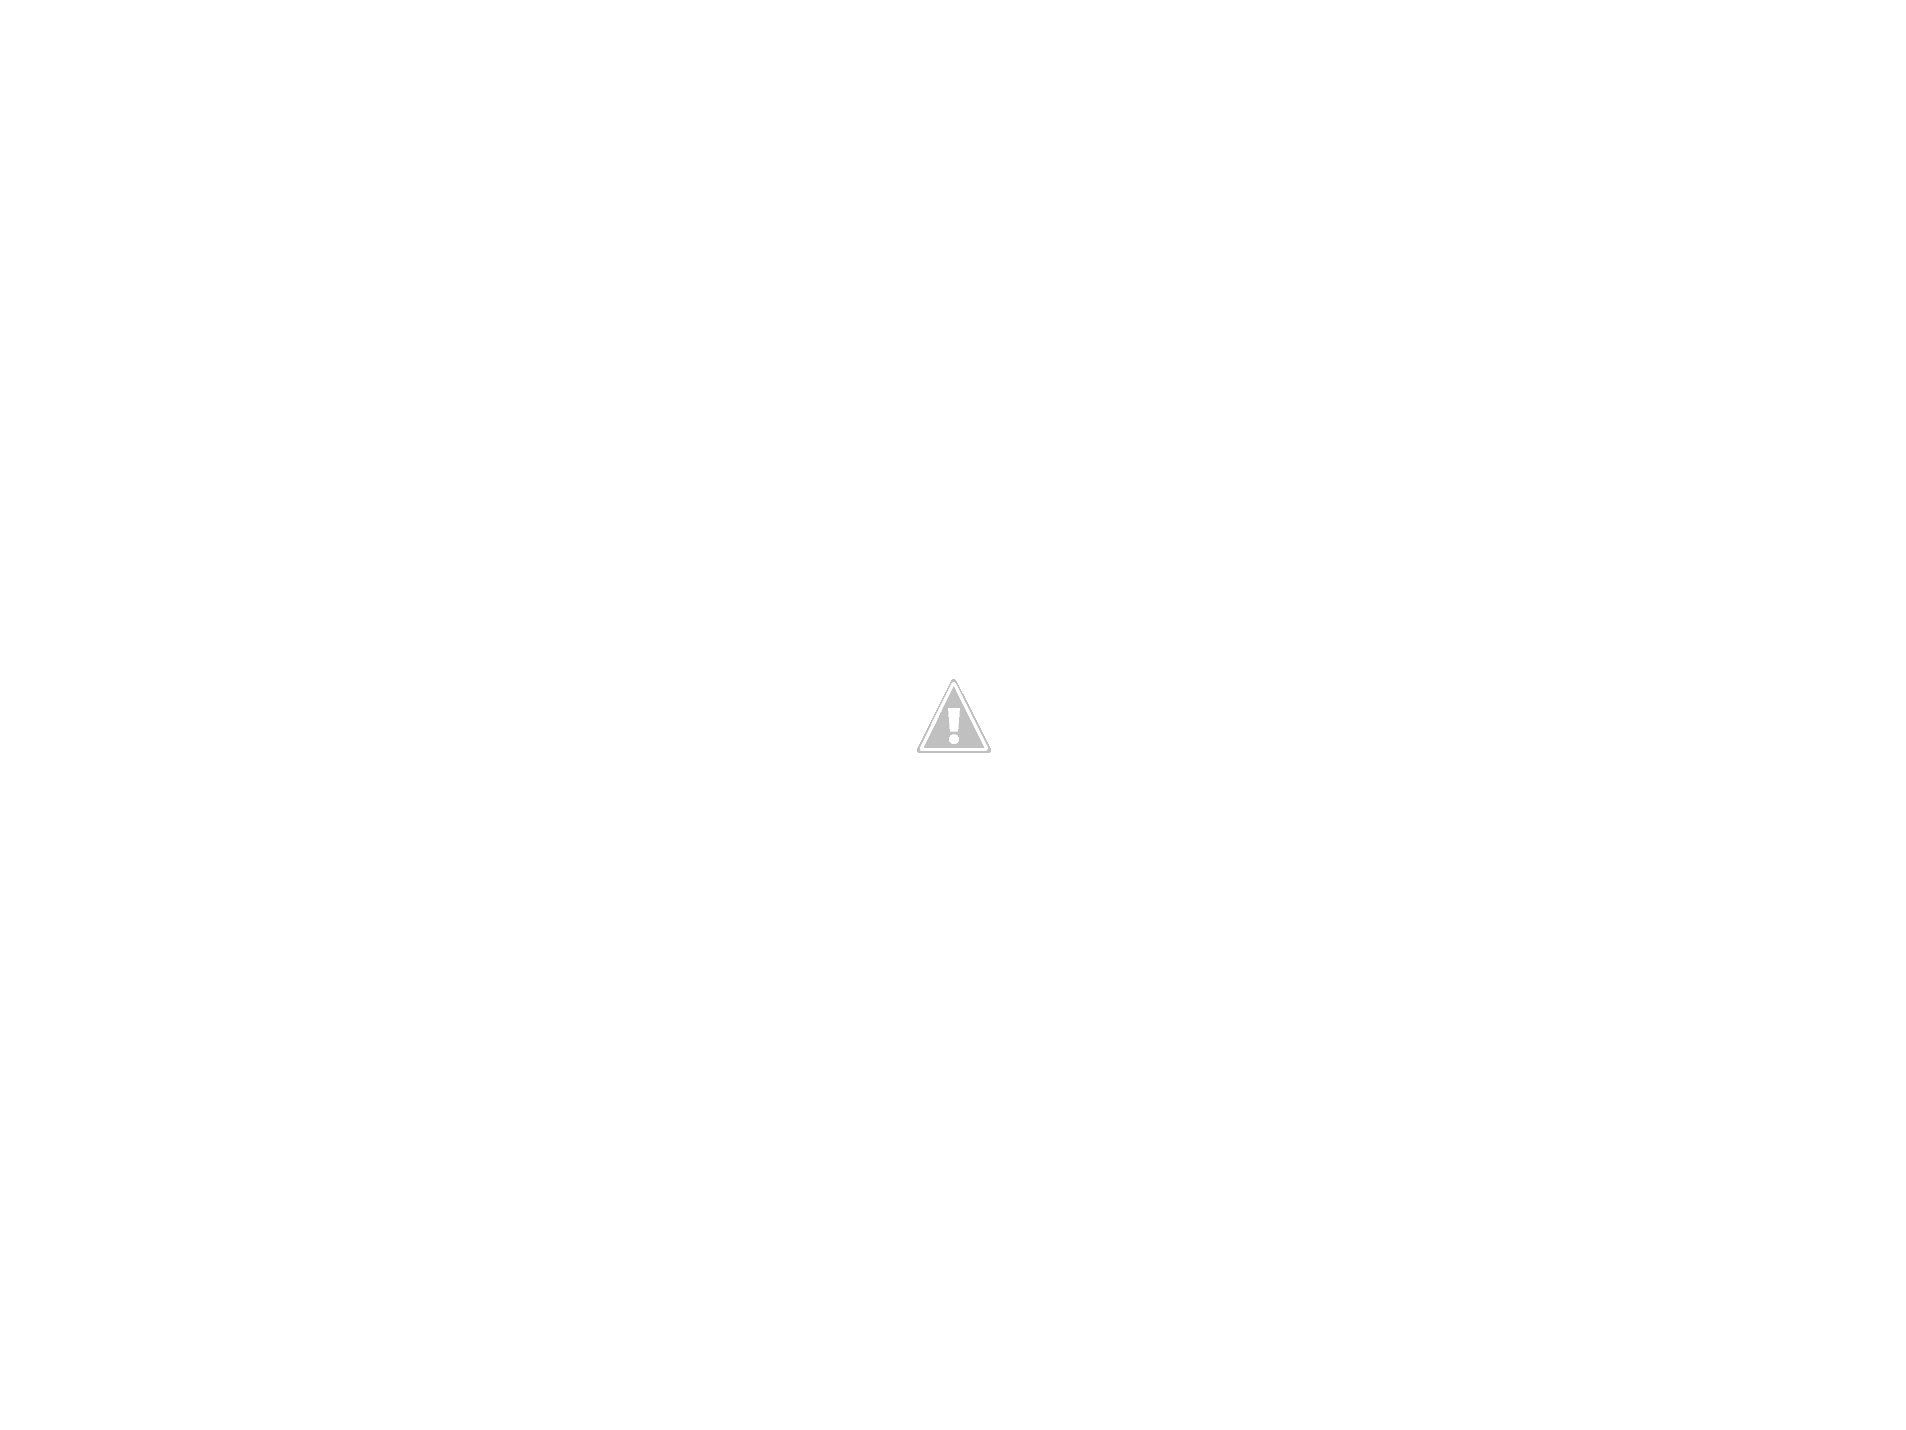 fuse box help diesel place chevrolet and gmc diesel truck forums rh  dieselplace com 1994 gmc topkick fuse box 1995 gmc topkick fuse box location